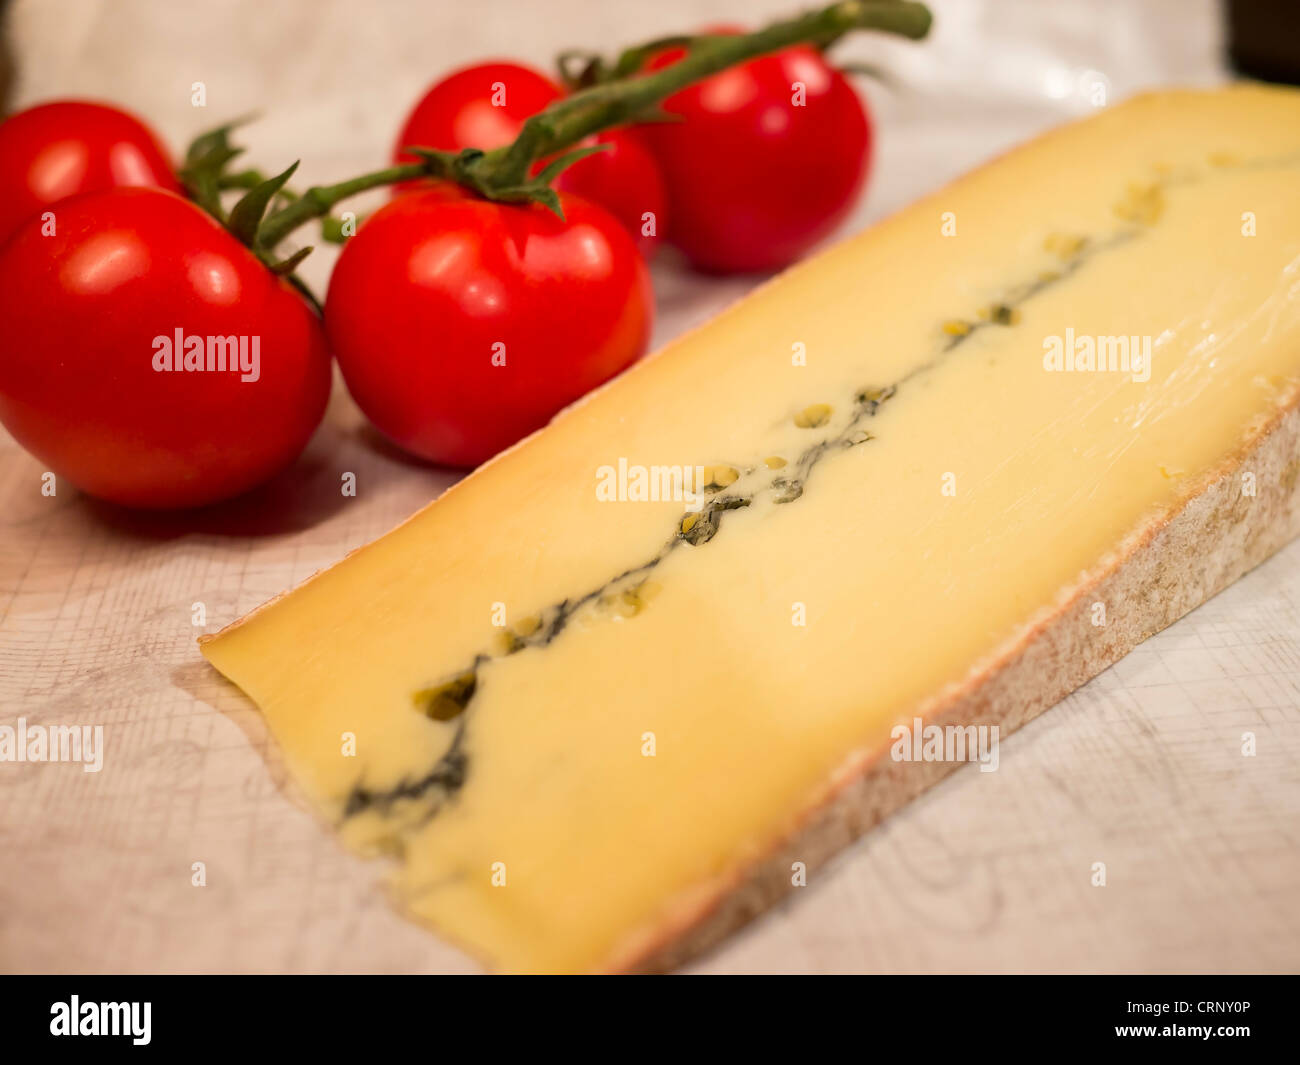 A slice of morbier cheese and a bunch of ripe tomatoes. Morbier is a semi-soft cows' milk cheese from France. - Stock Image